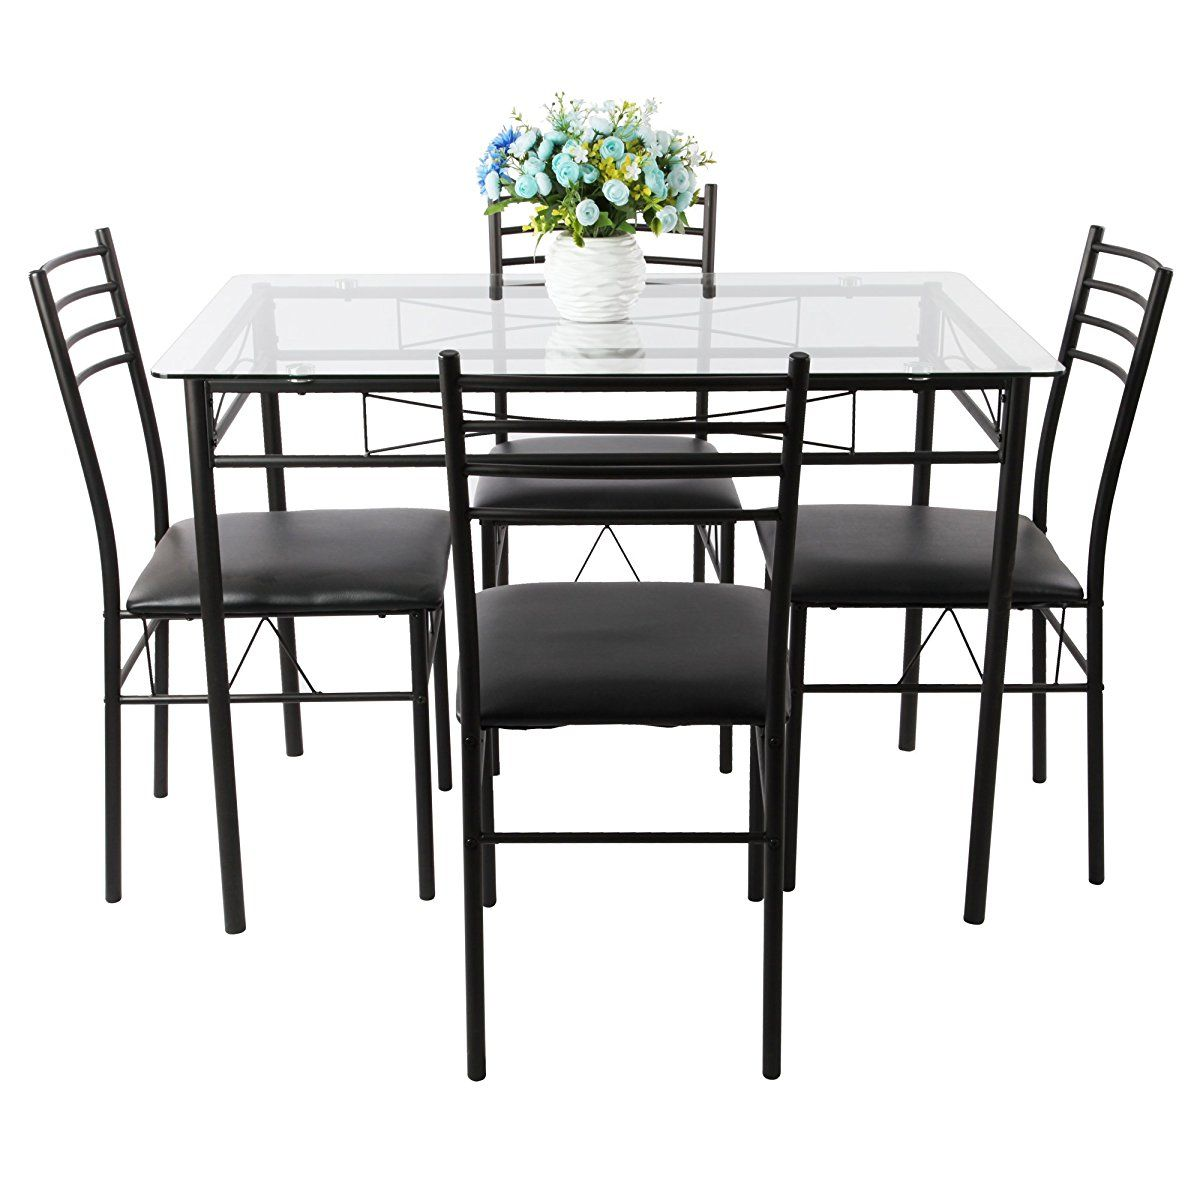 Vecelo Dining Table With 4 Chairs Black Black Dining Table Set Dining Table Dining Table Legs